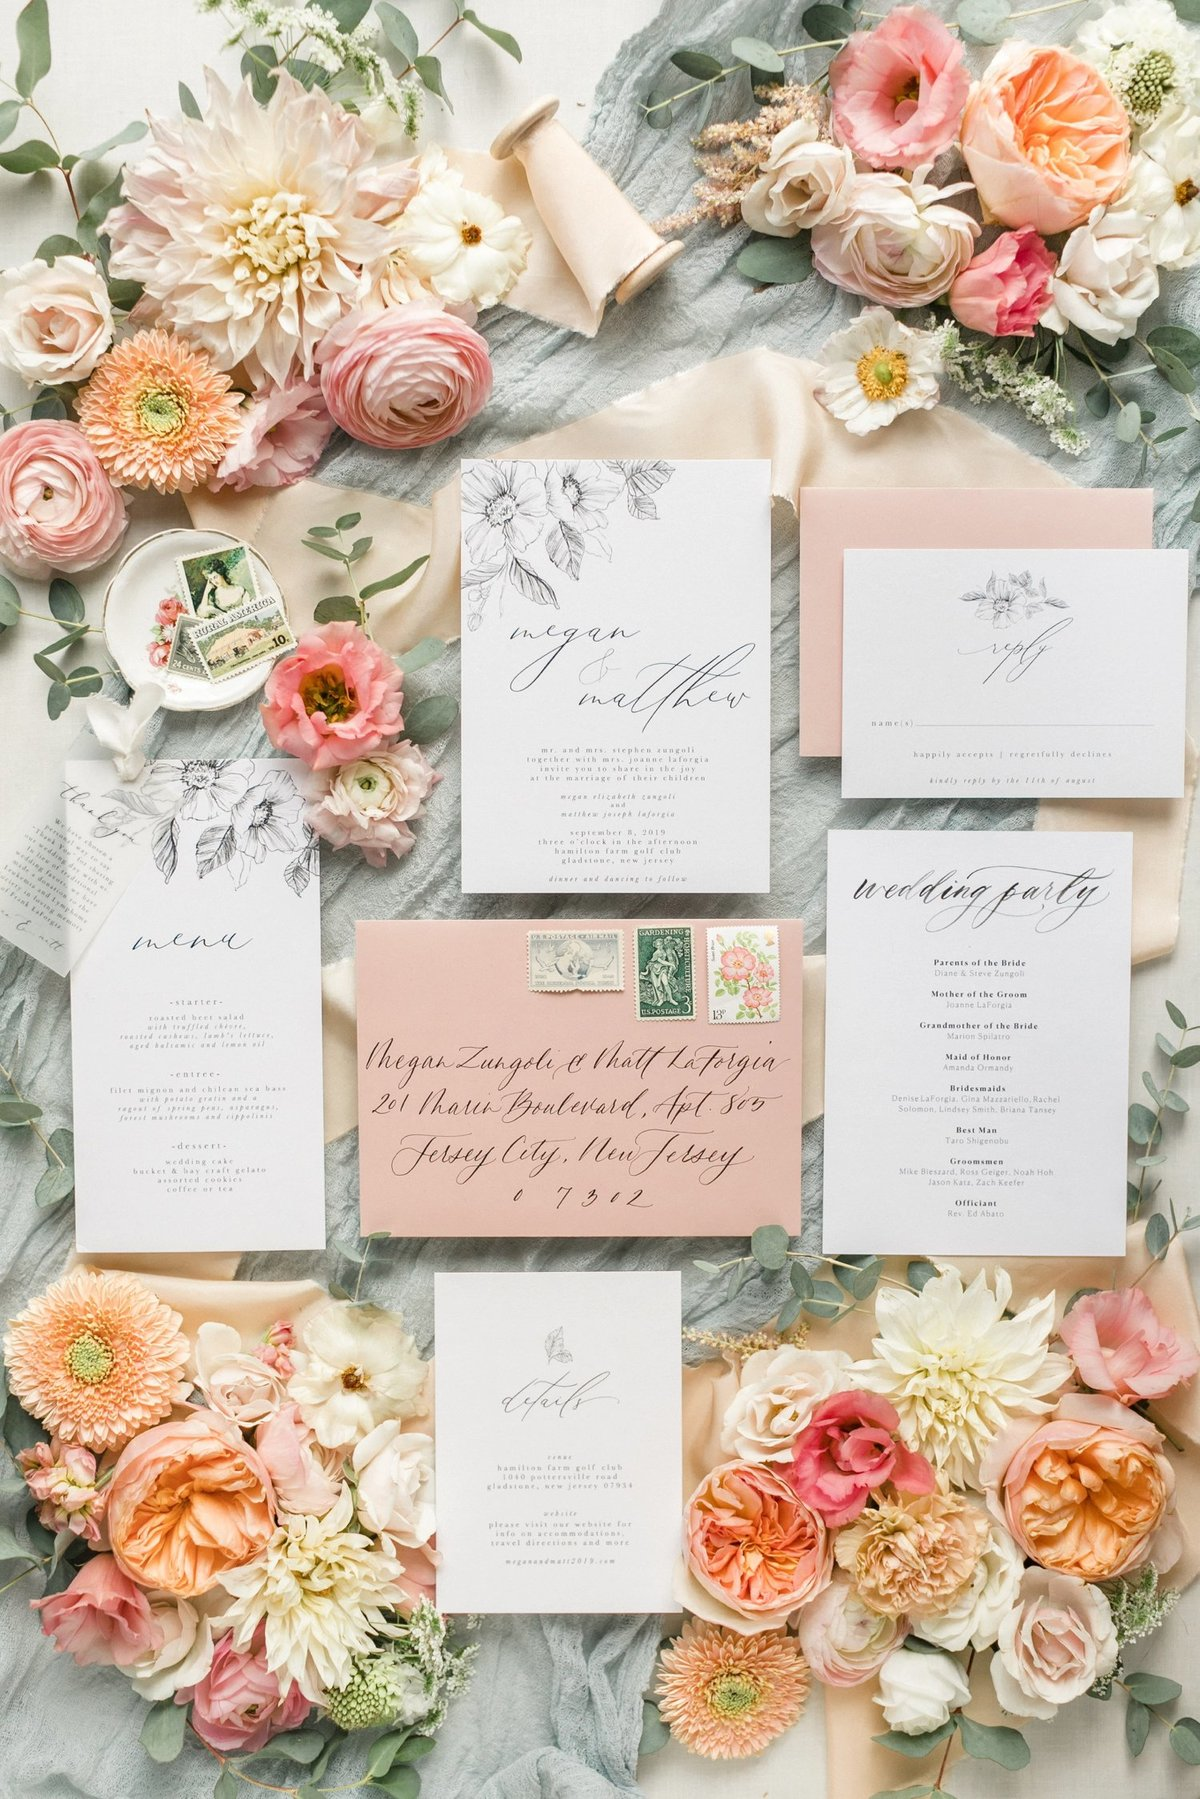 virginia_english garden wedding__2491